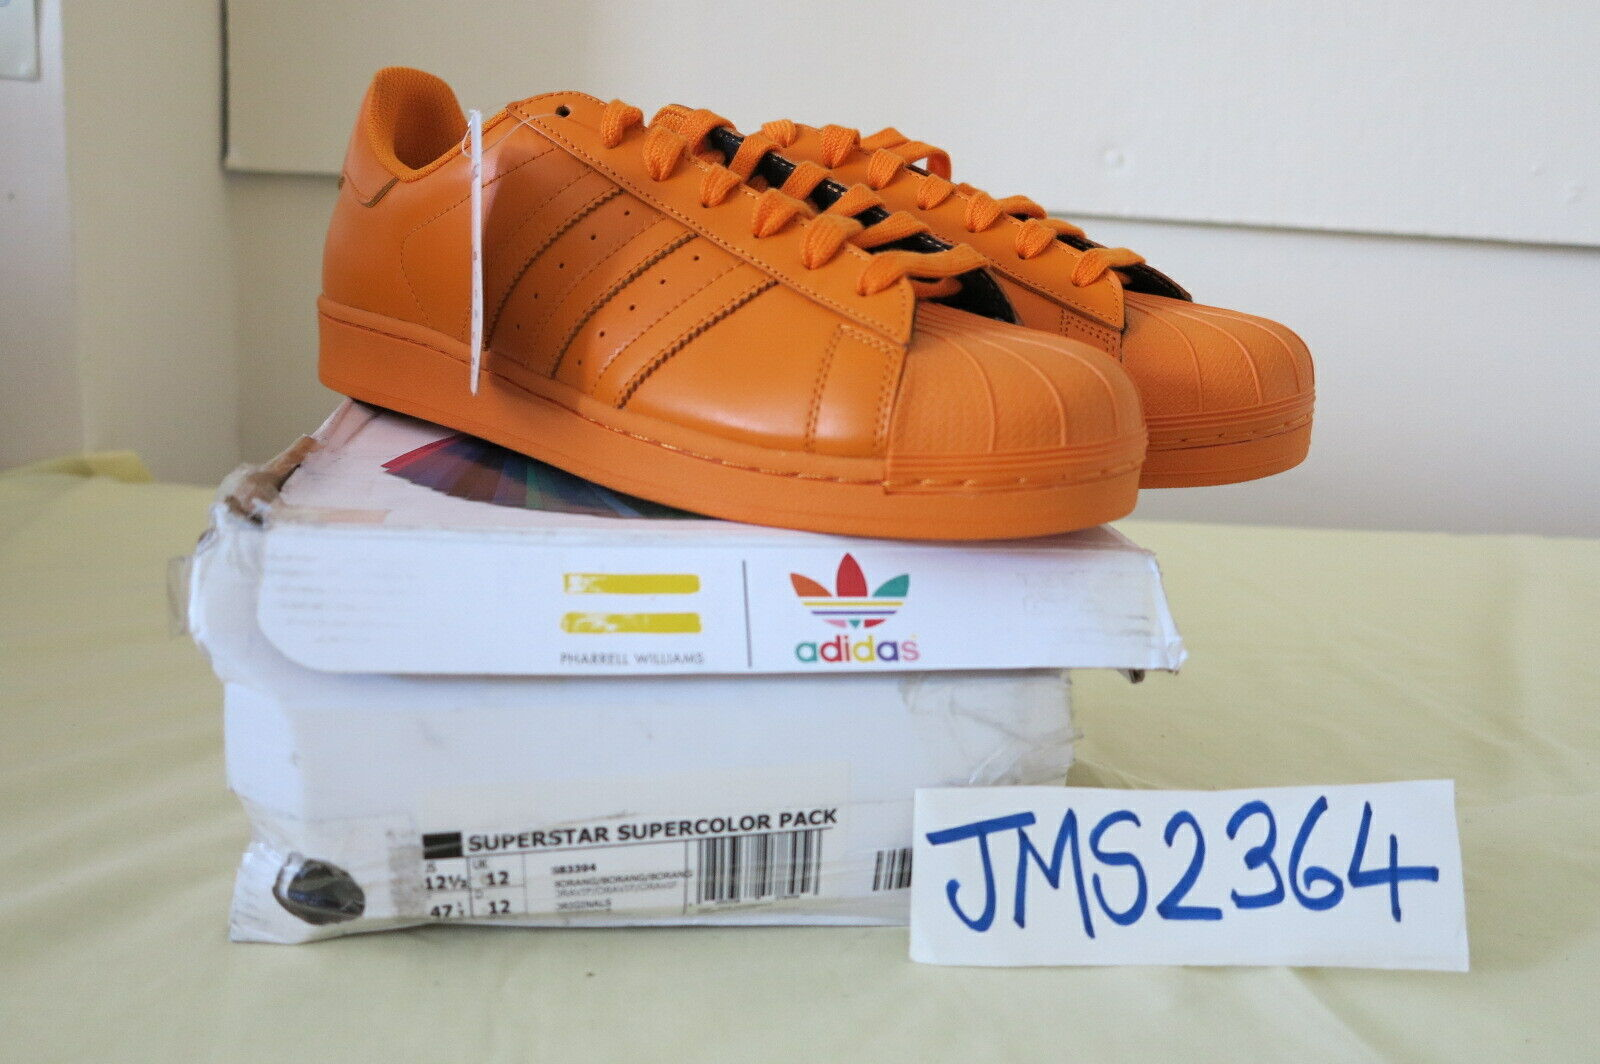 ADIDAS ORIGINALS PHARRELL WILLIAMS SUPERSTAR SUPERFarbe Orange 12.5US 12UK RARE